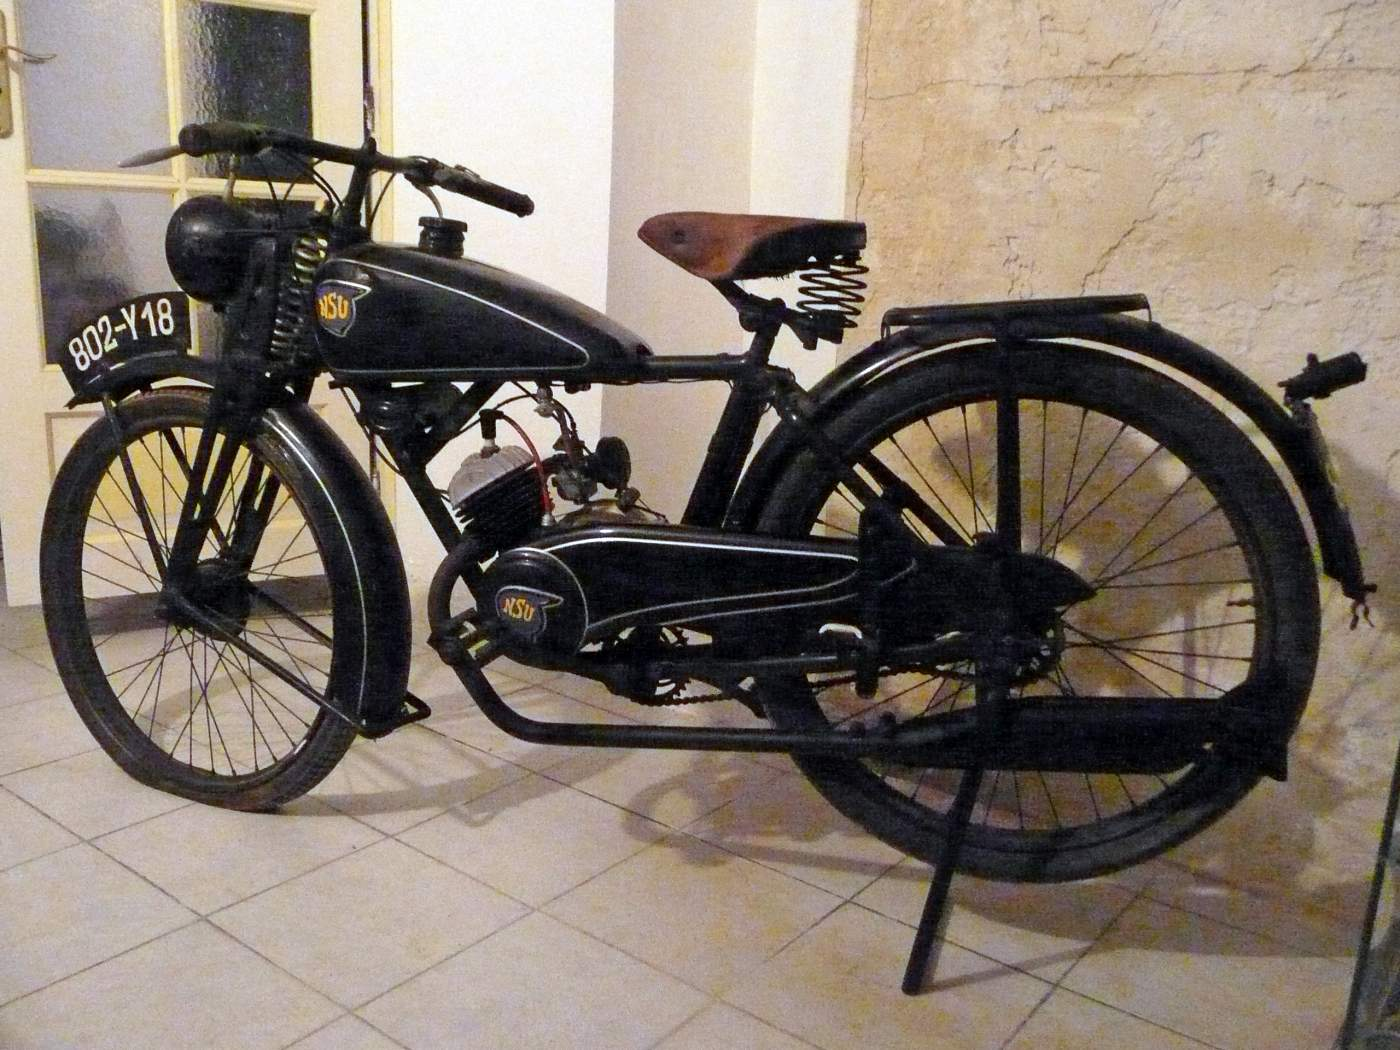 moto rare nsu quick 98 cm3 de 1939 vendre moto scooter motos d 39 occasion. Black Bedroom Furniture Sets. Home Design Ideas